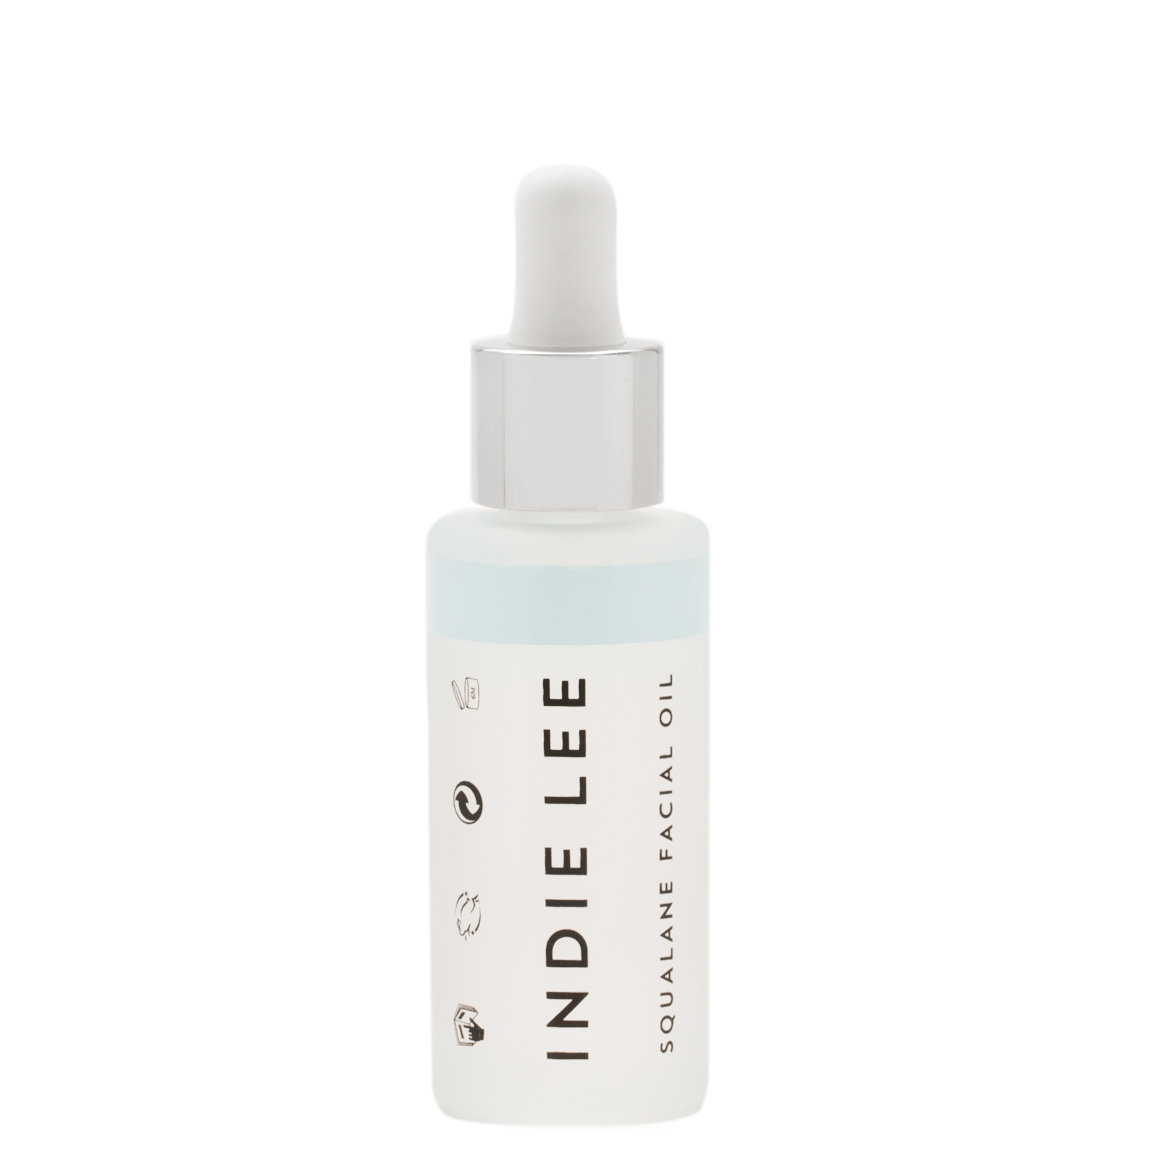 Indie Lee Squalane Facial Oil 1 oz product smear.